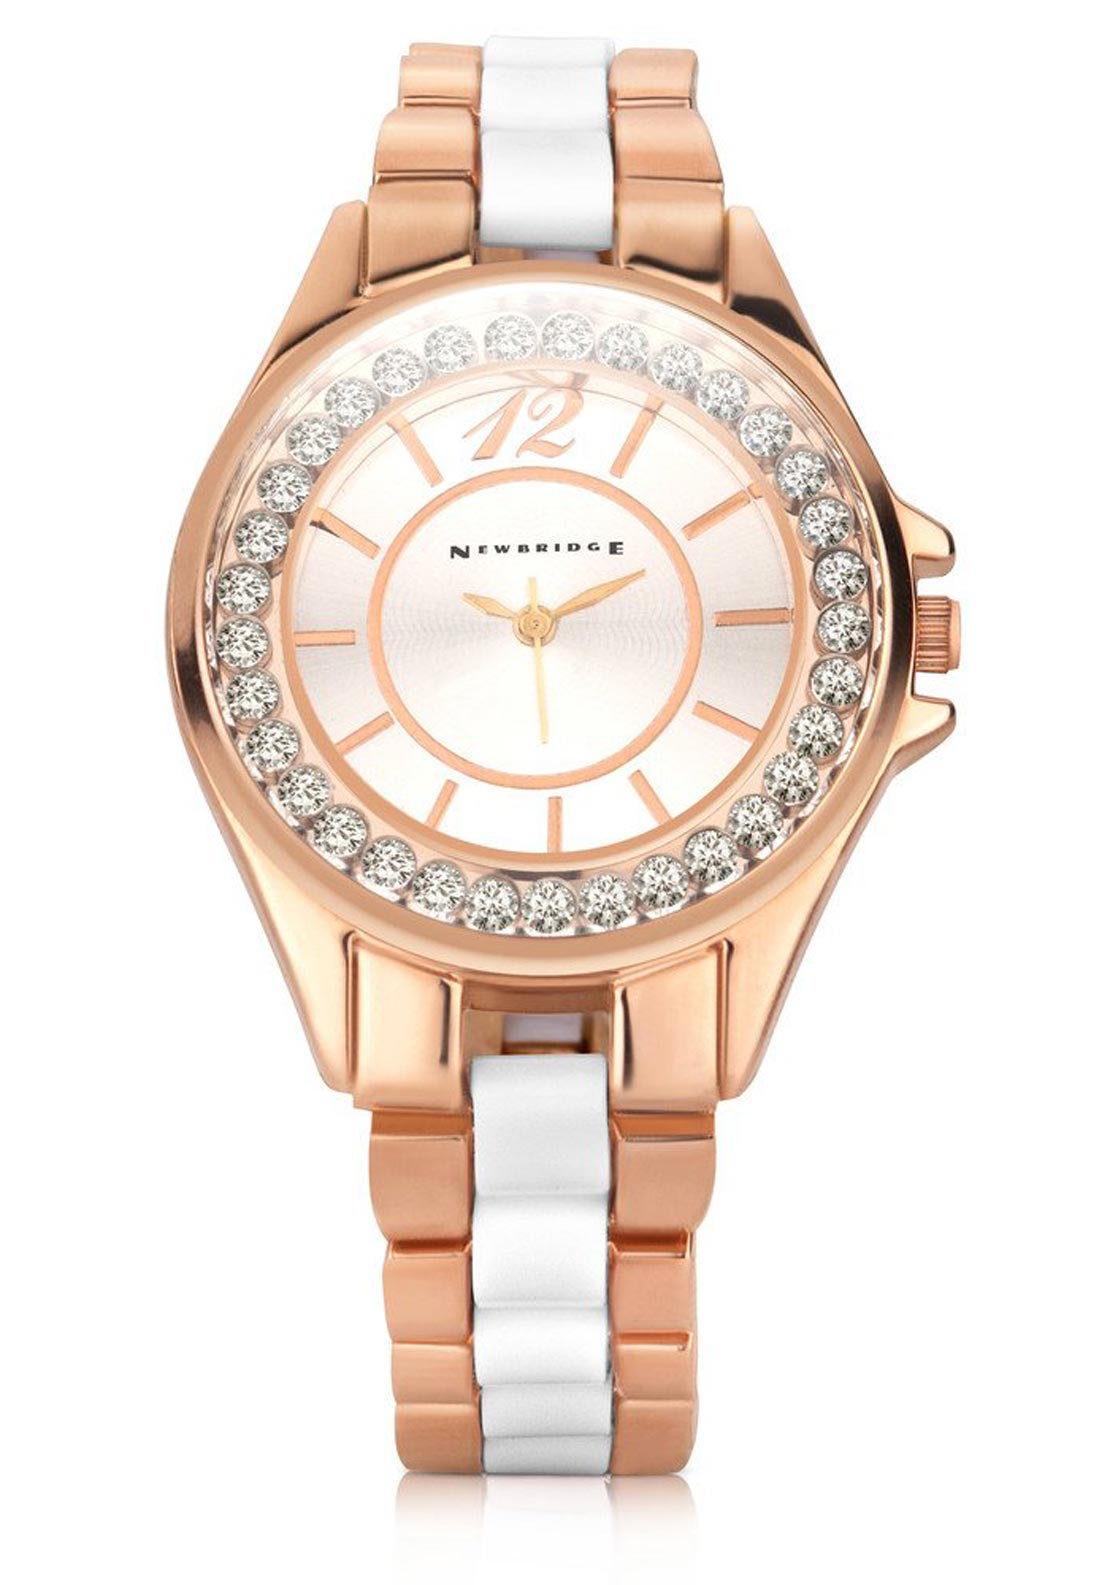 Newbridge Ladies Clear Stone Watch, Rose Gold